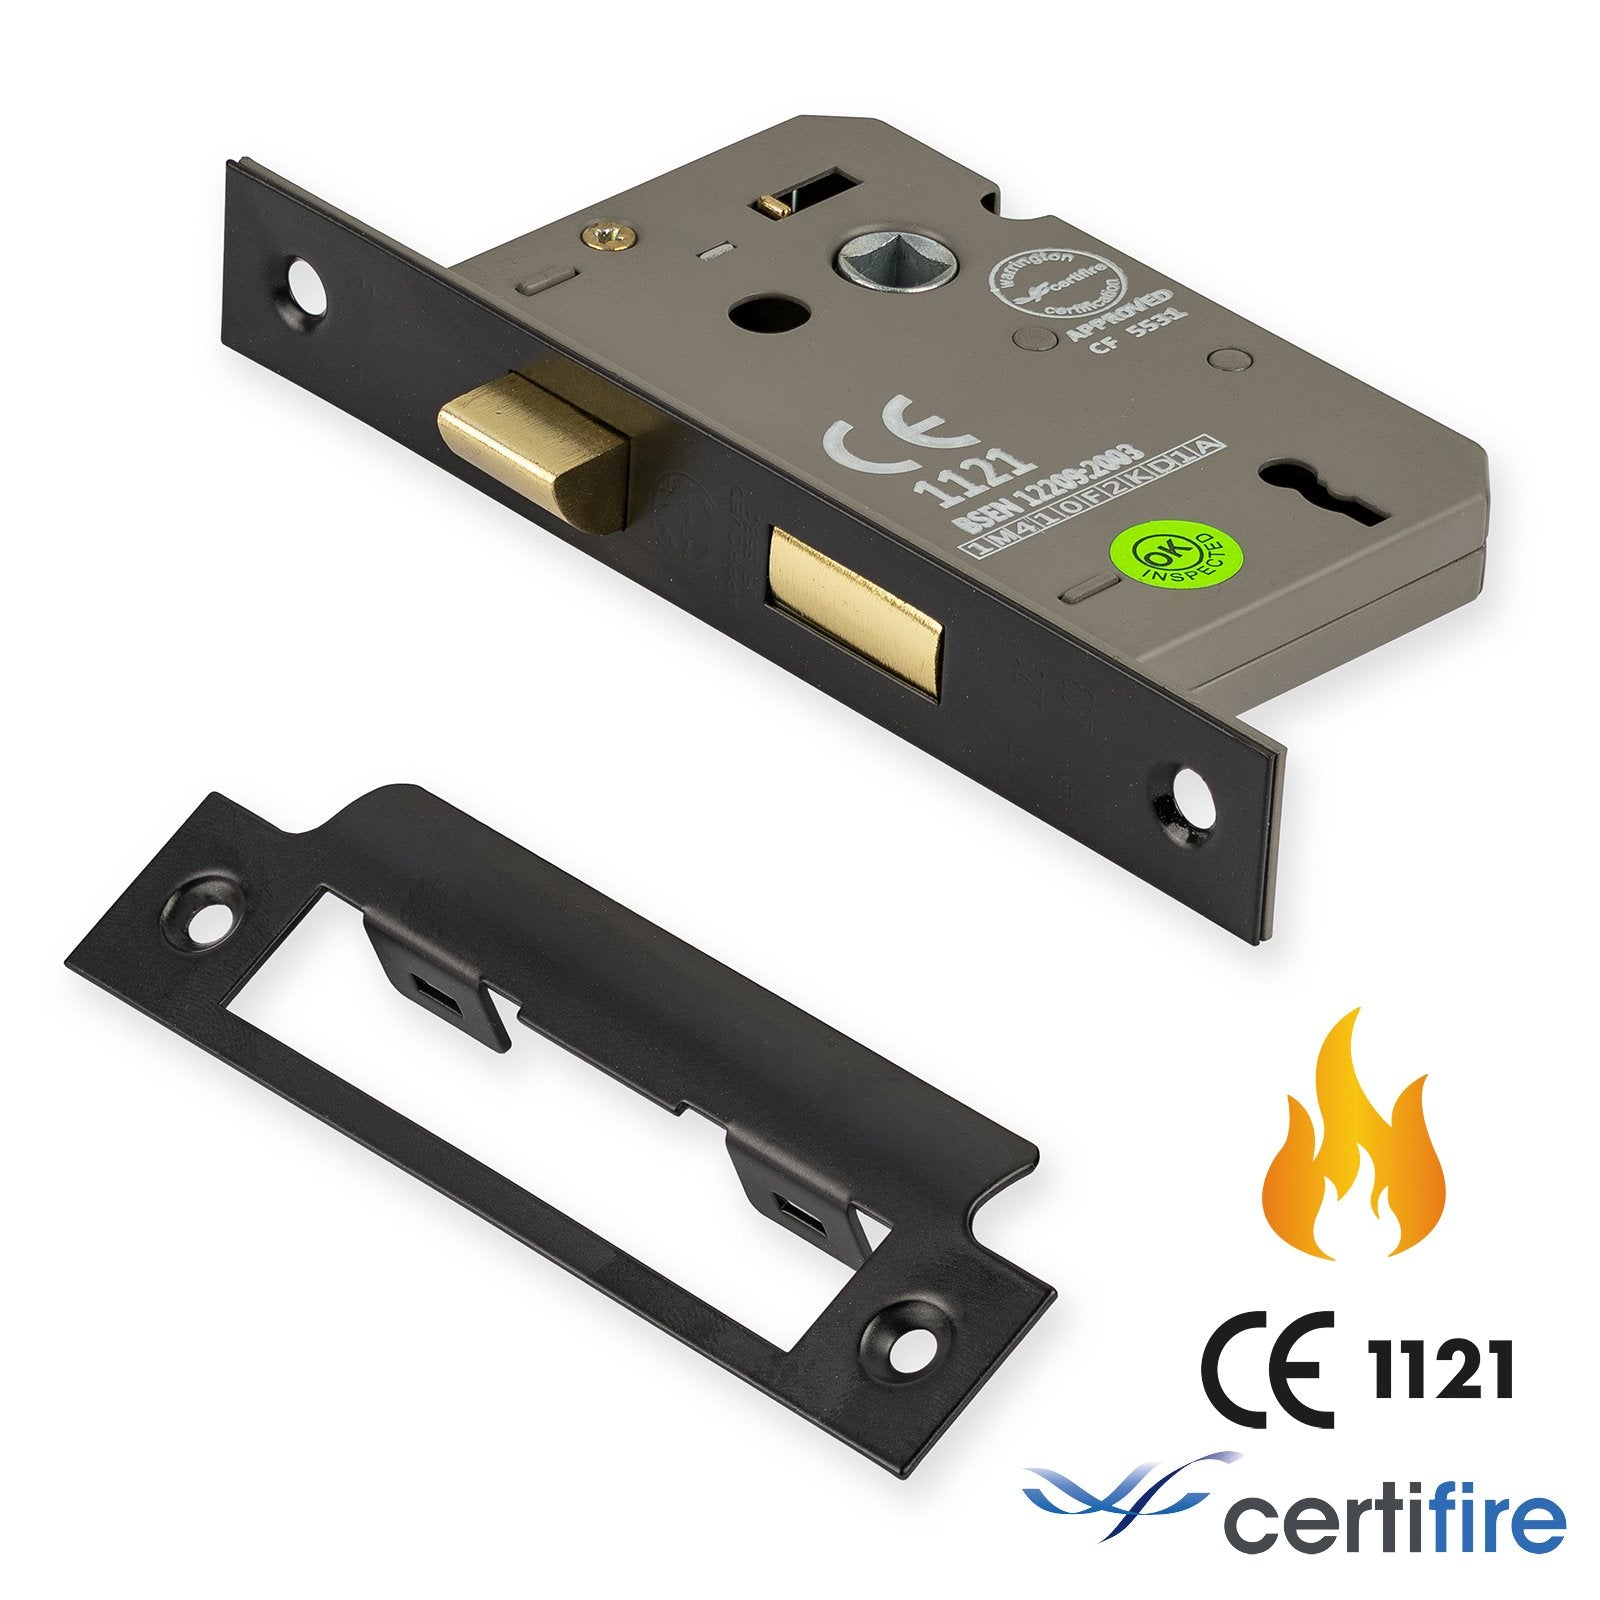 3 lever sash lock fire rated CE1211 | epoxy black | 44mm backset